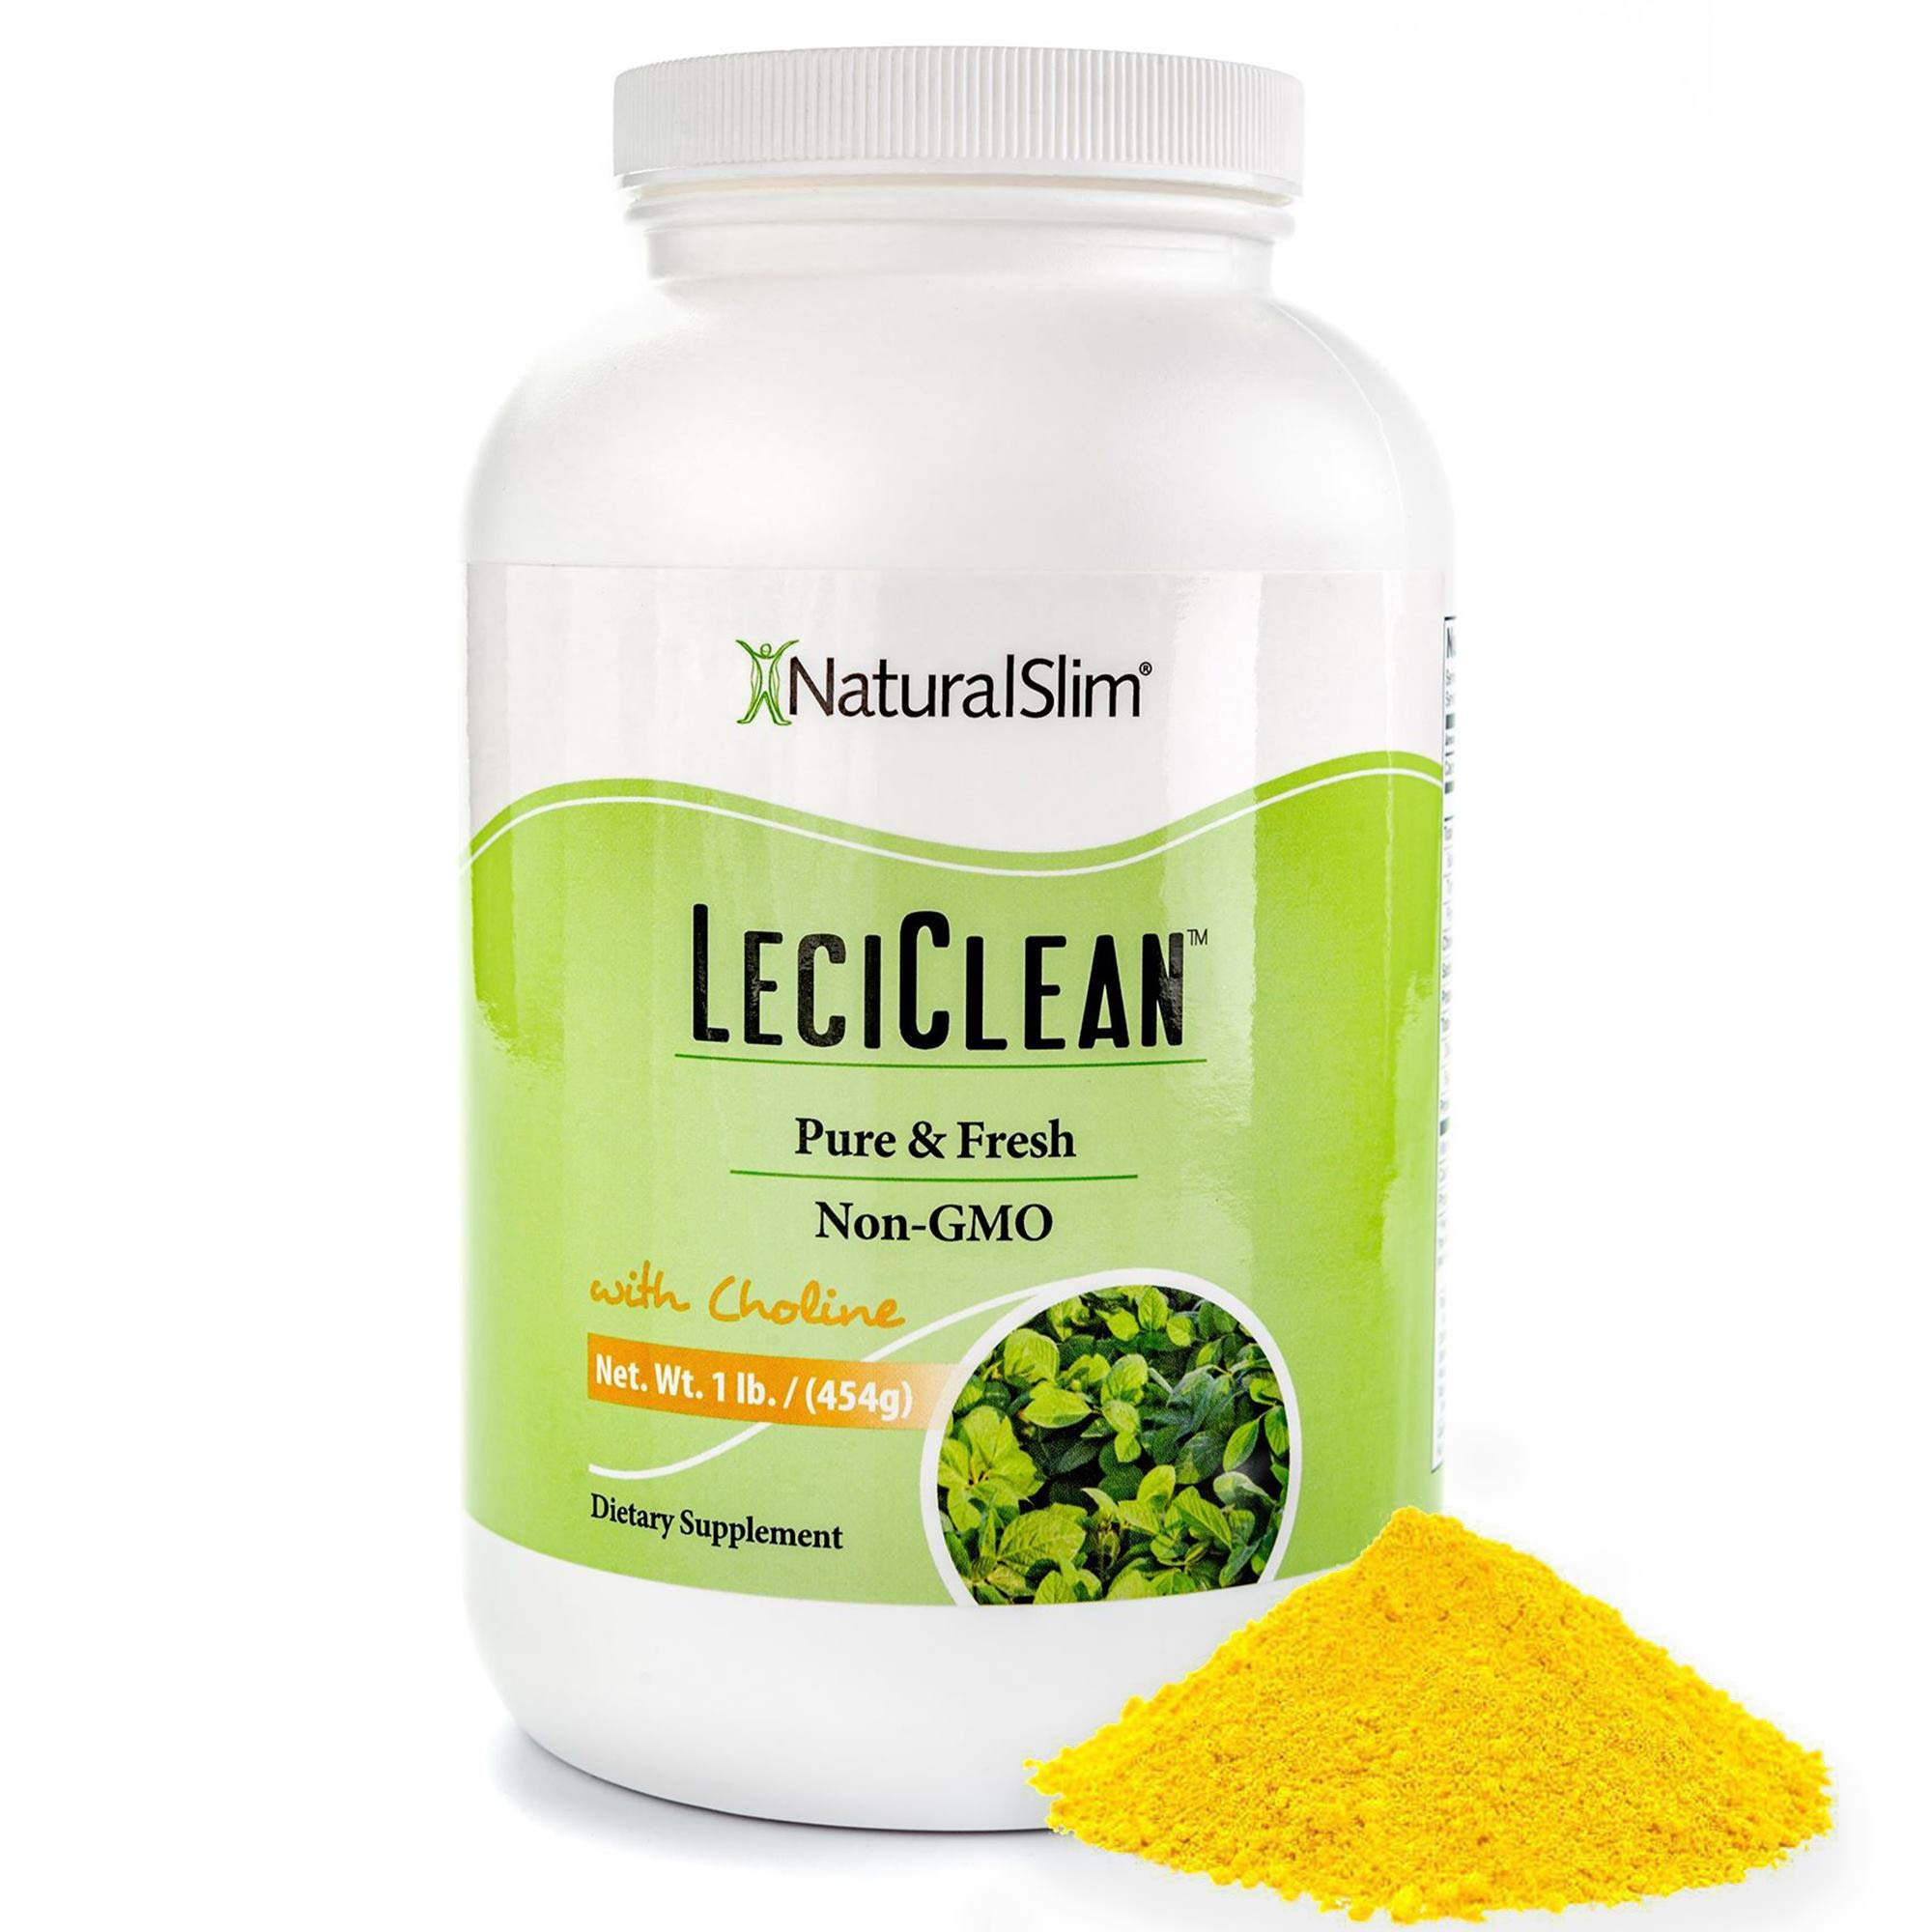 NaturalSlim Non GMO Lecithin Granules with Choline - 100% Pure Powder Dieatary Supplements - Easily Dissolves in Protein Shake for Metabolismo Support by NaturalSlim